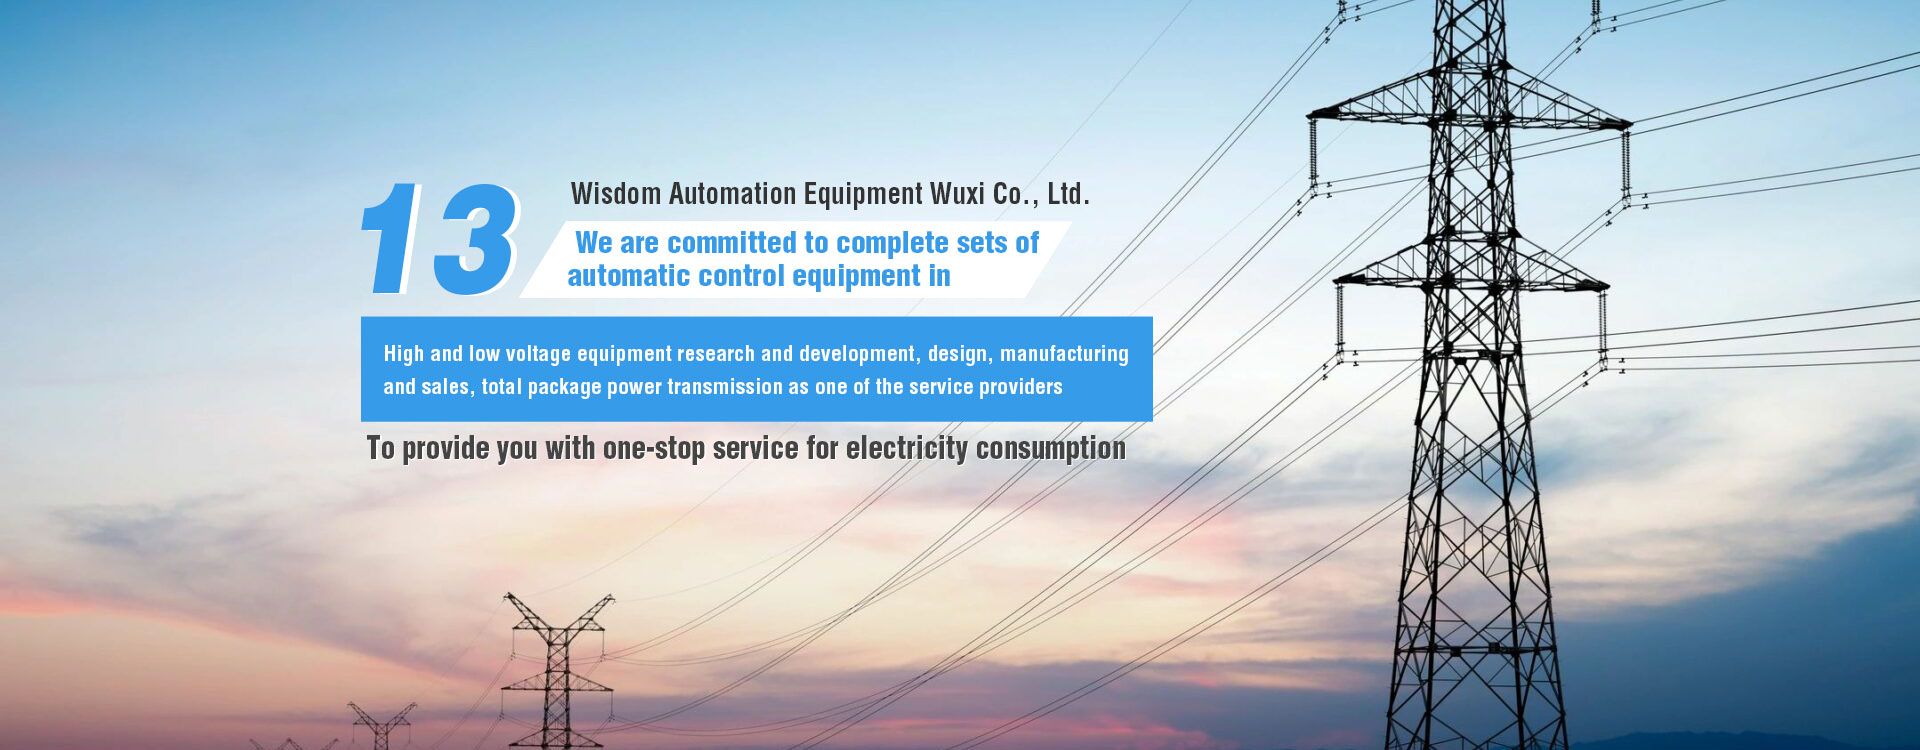 Weston Automatic Equipment Wuxi Co., Ltd.